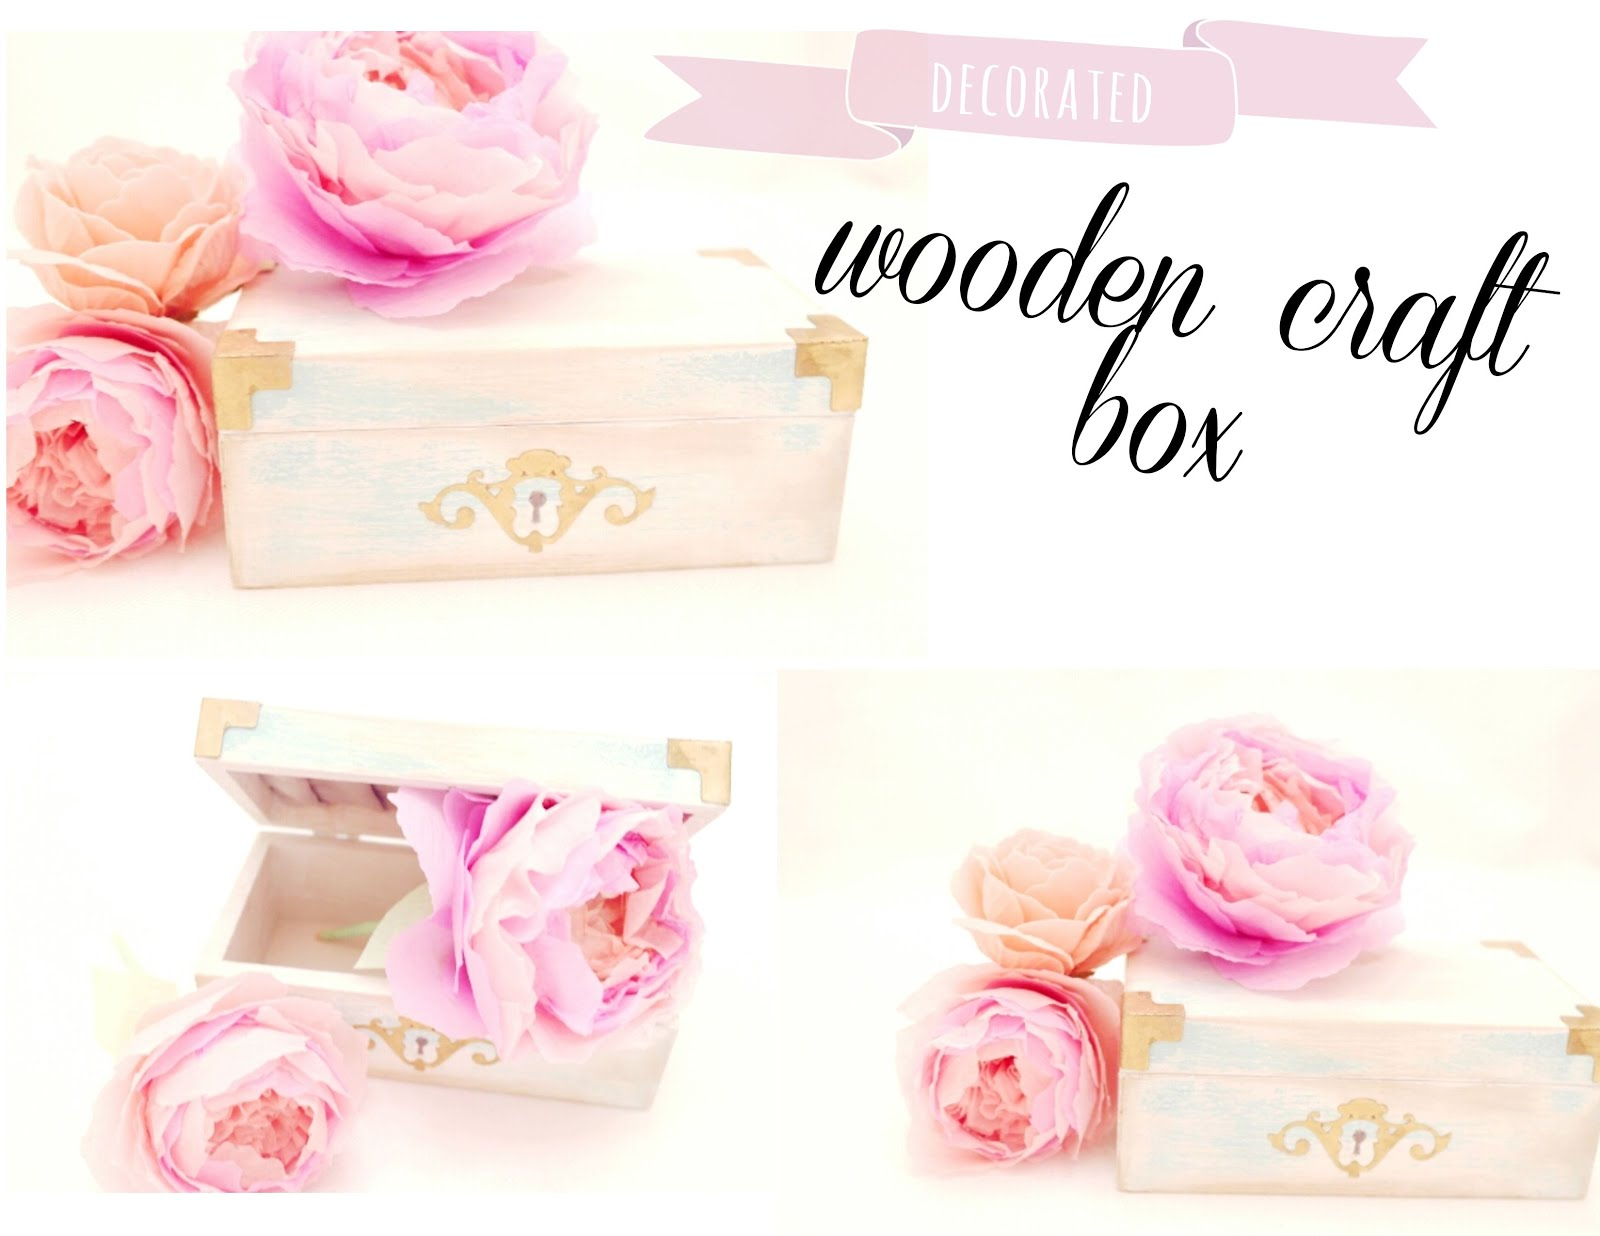 dollar store wooden box transformation - twigg studios